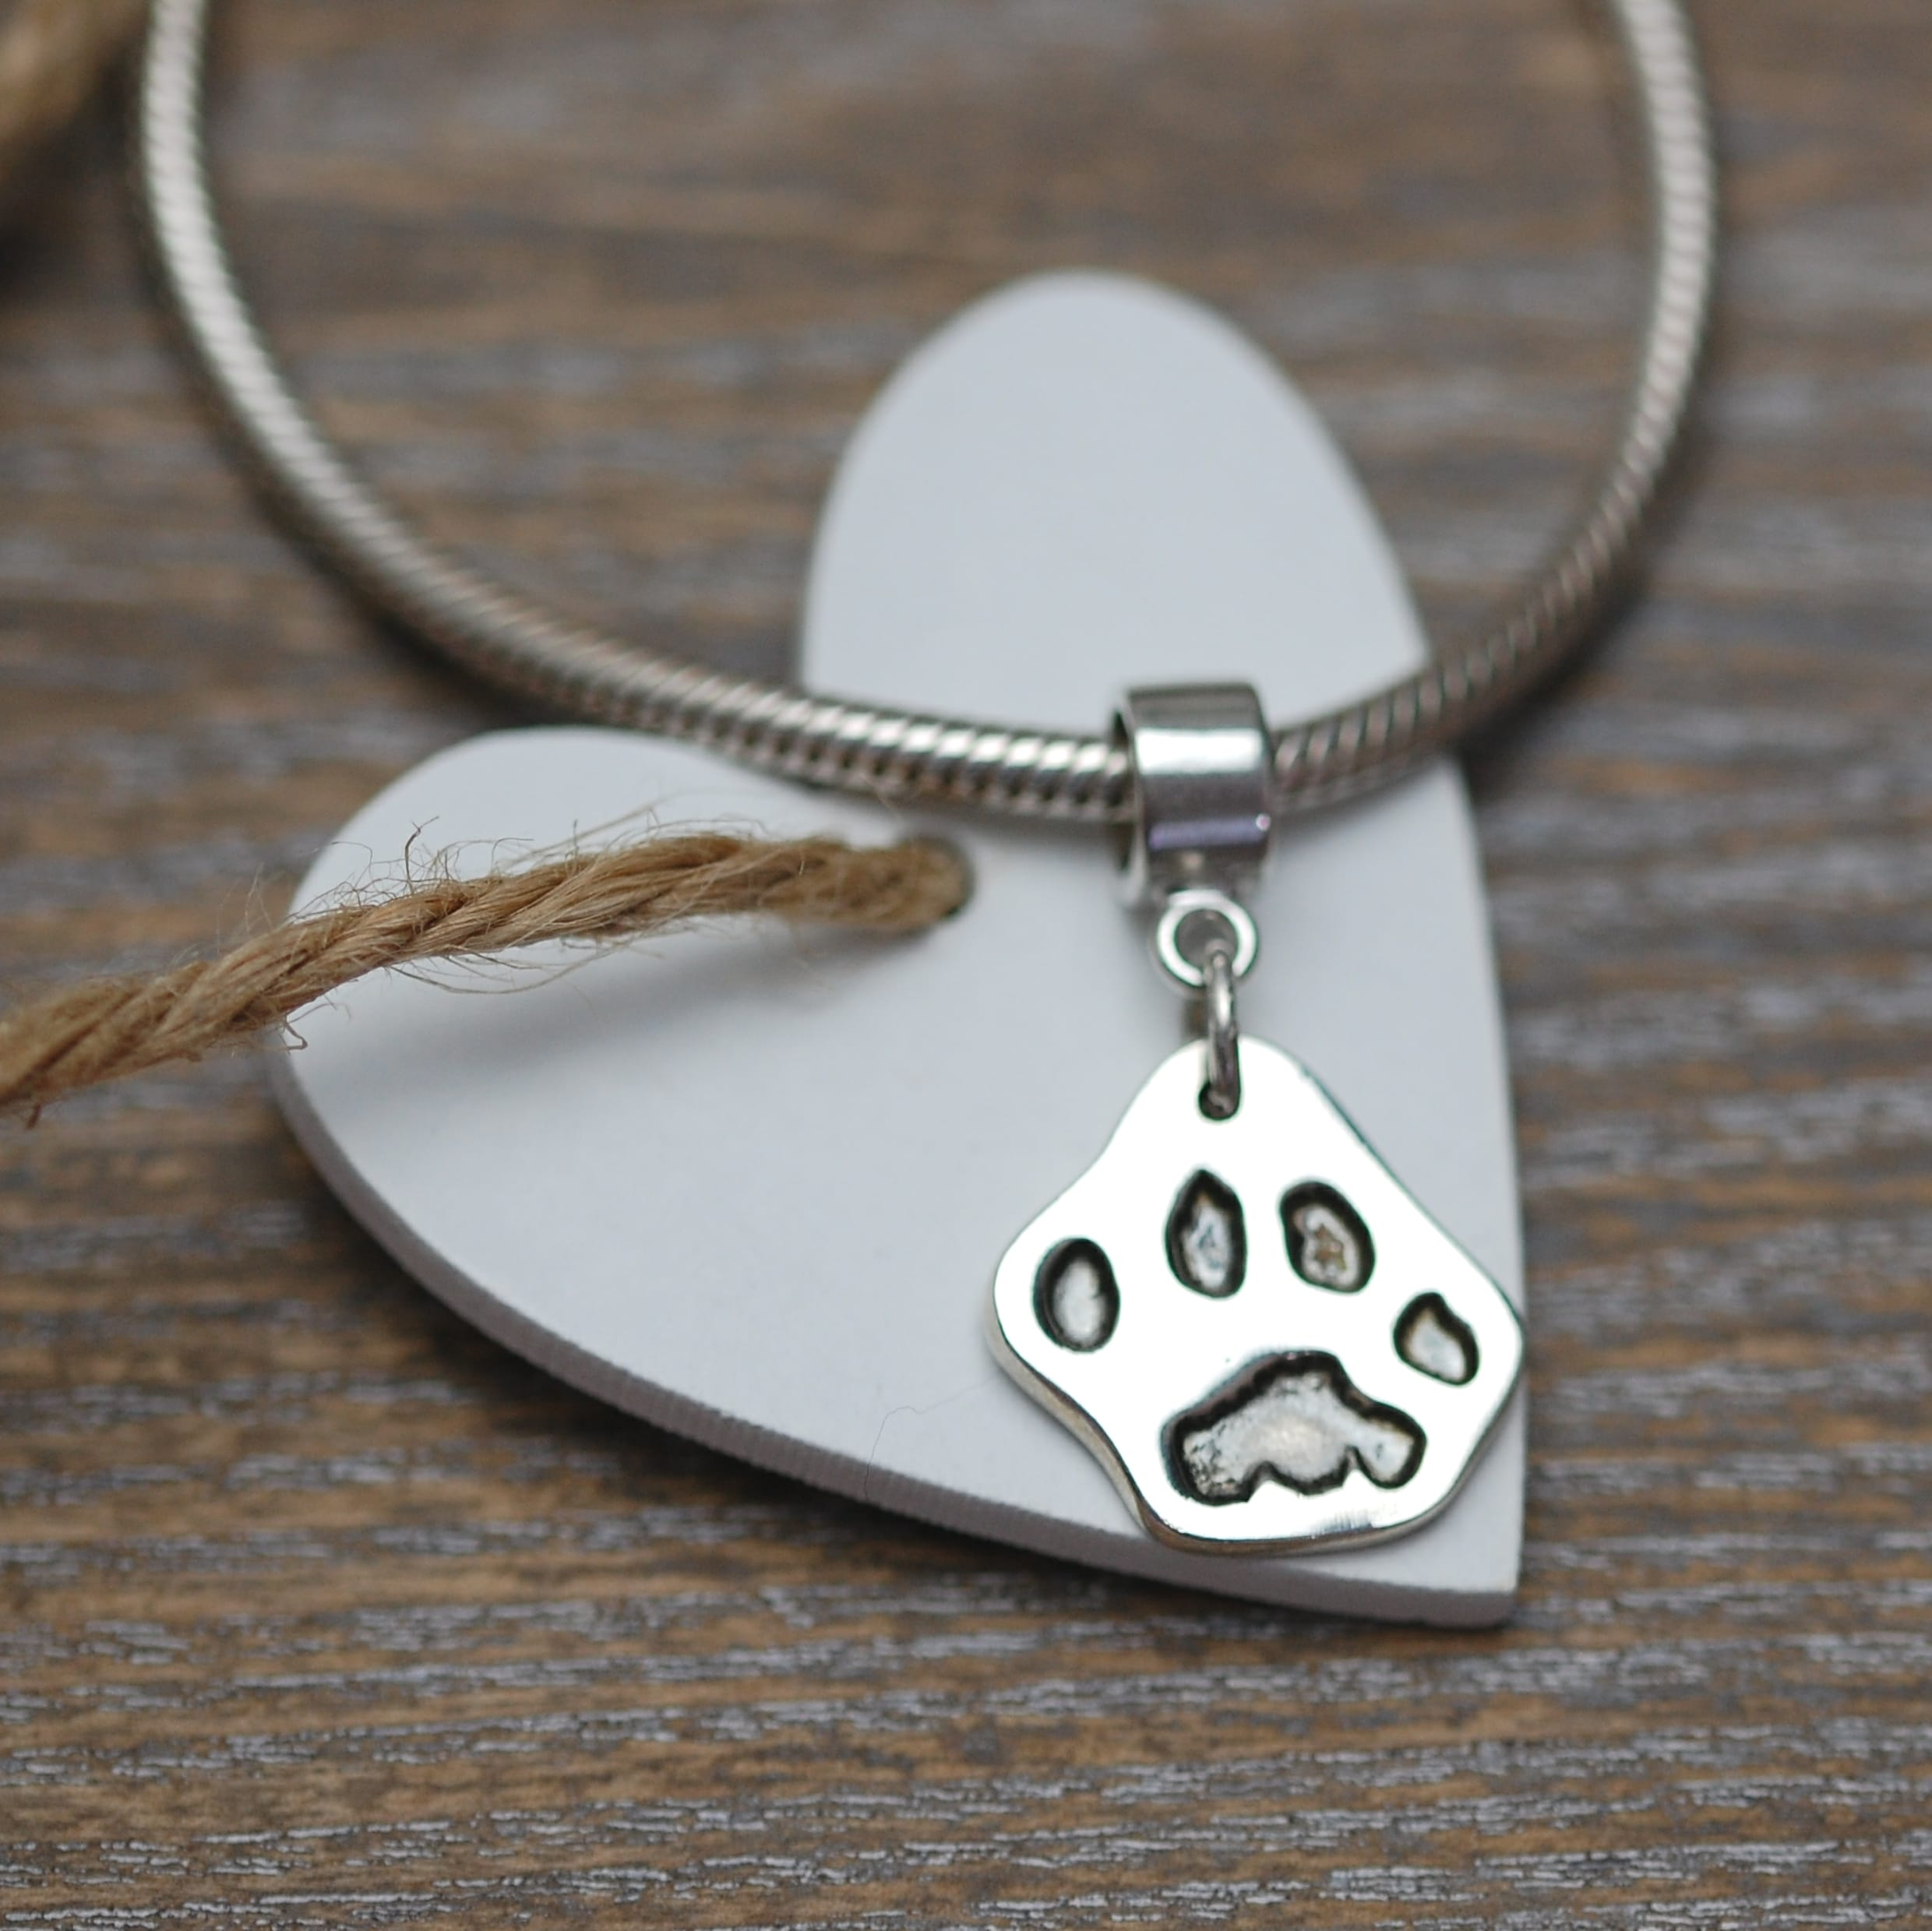 Small silver cut out paw print jewellery charm with charm carrier